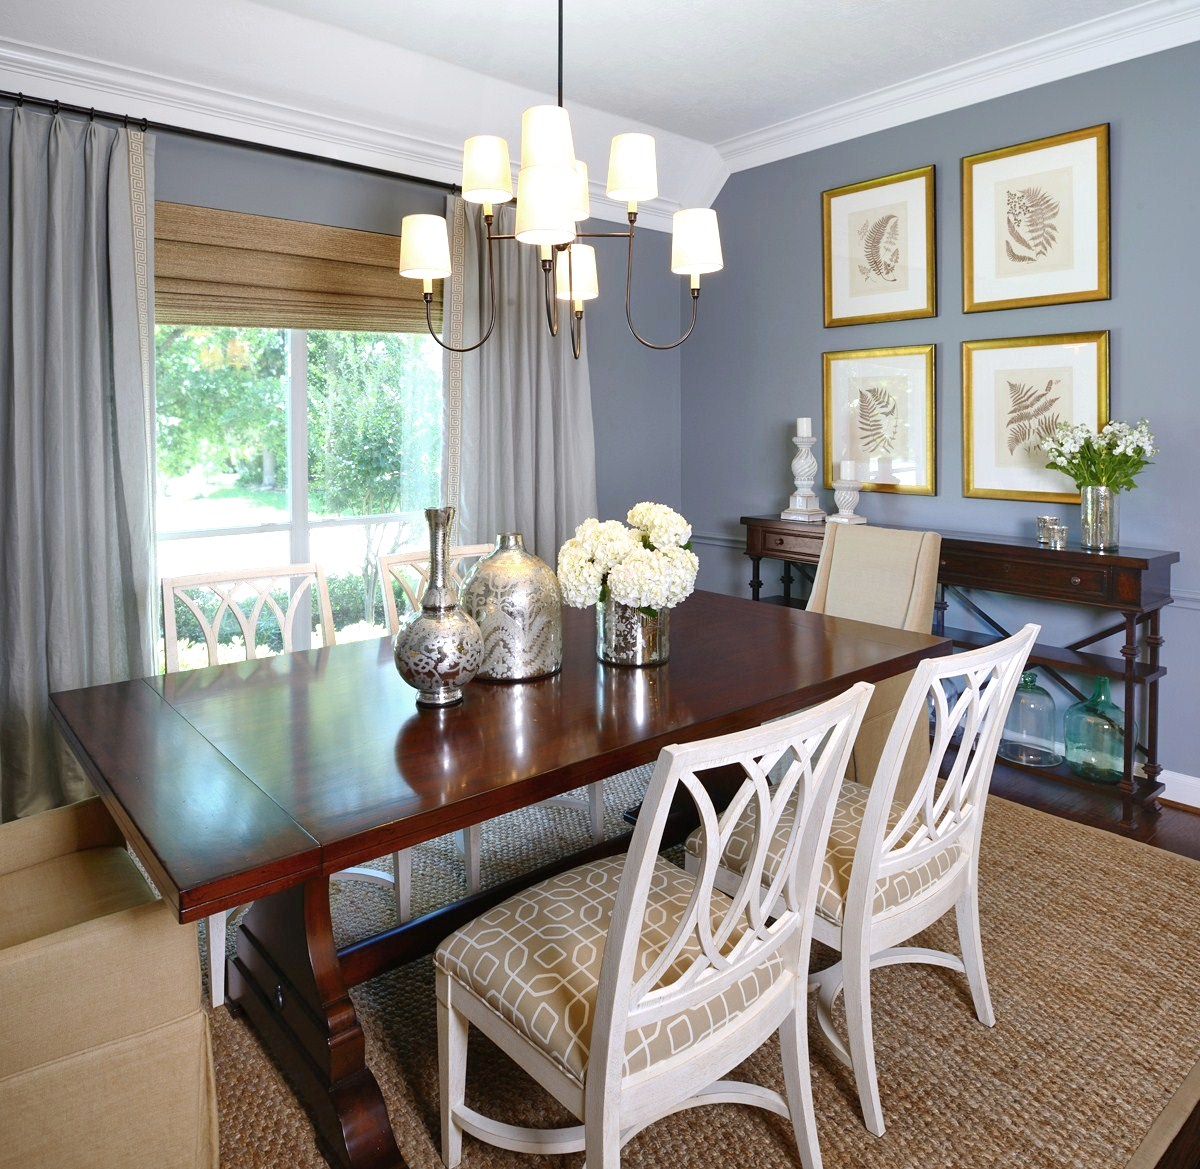 Best Benjamin Moore Gray Colors What Gray Paint Color Is Best Here Are My Favorites Designed